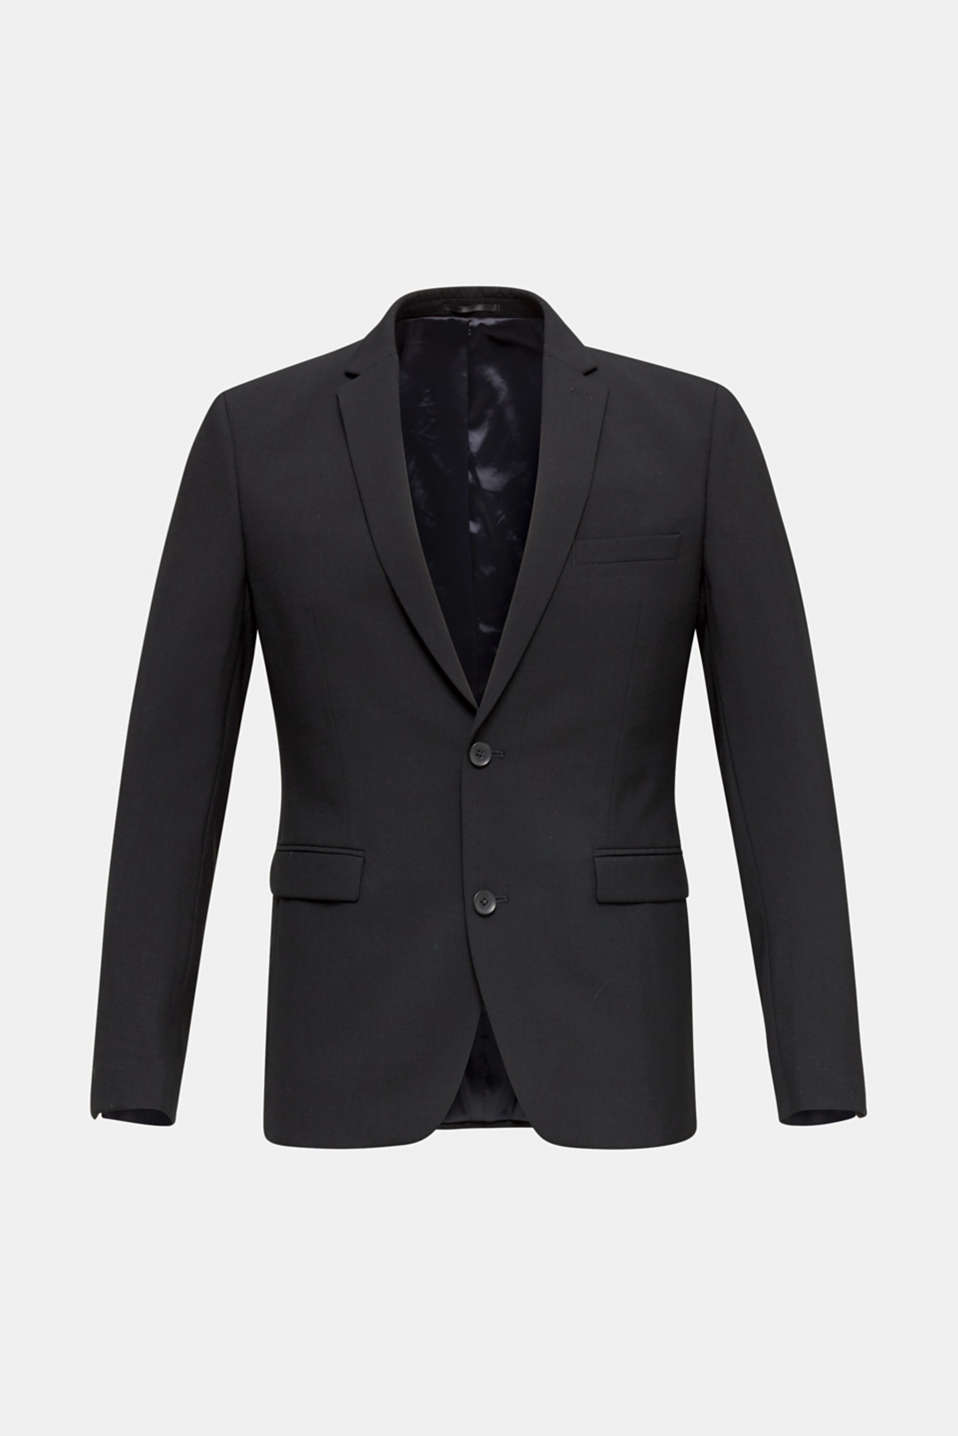 ACTIVE SUIT tailored jacket, wool blend, BLACK, detail image number 6